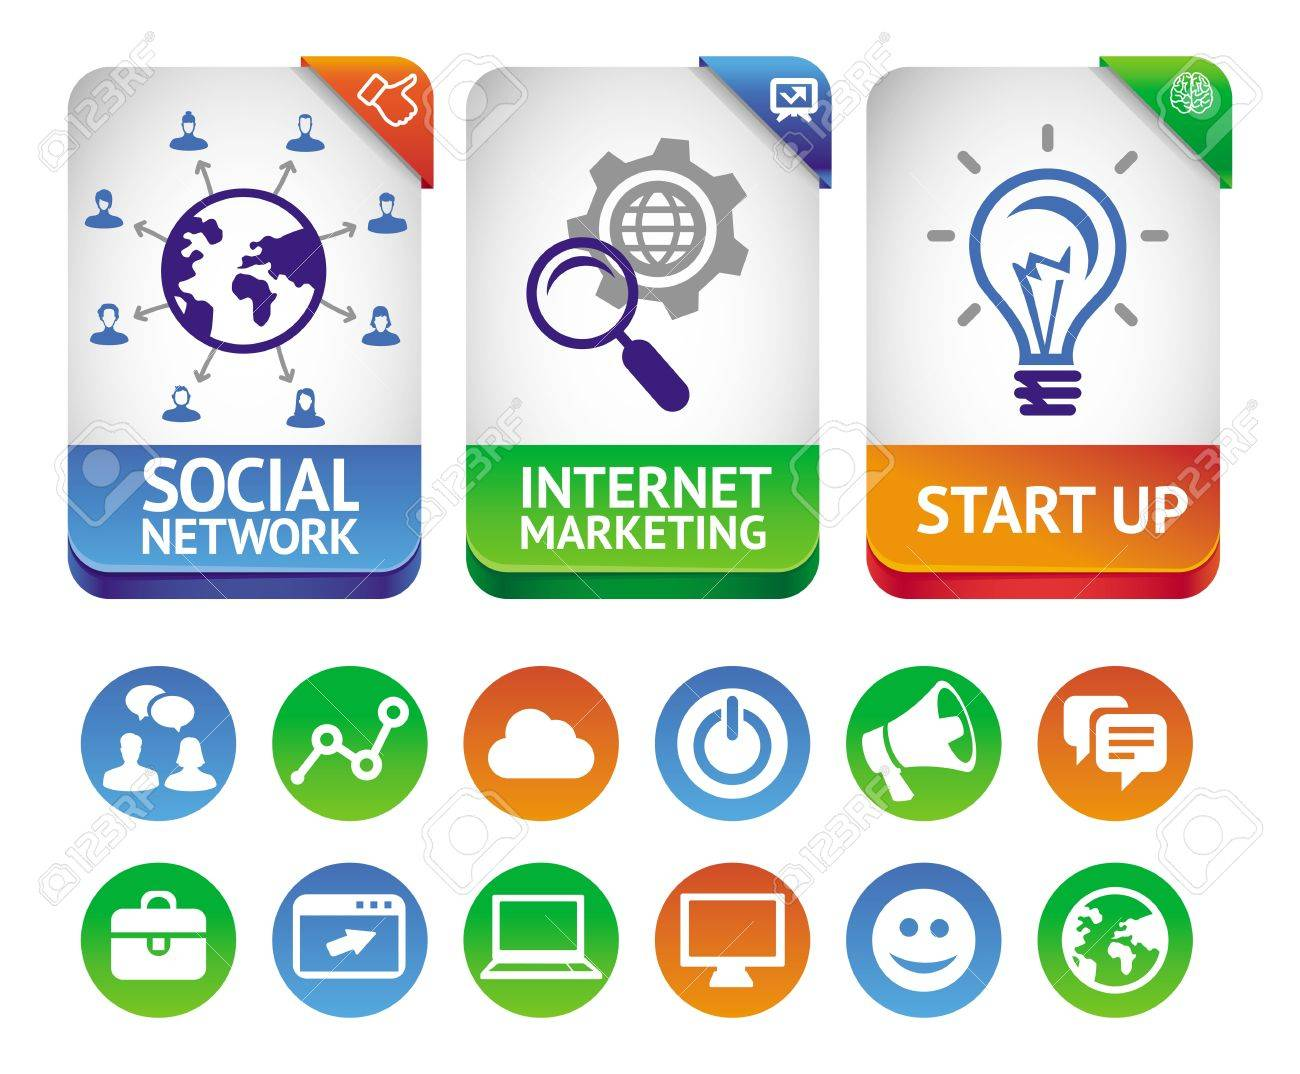 internet marketing labels - abstract design elements and social media icons Stock Vector - 16170606